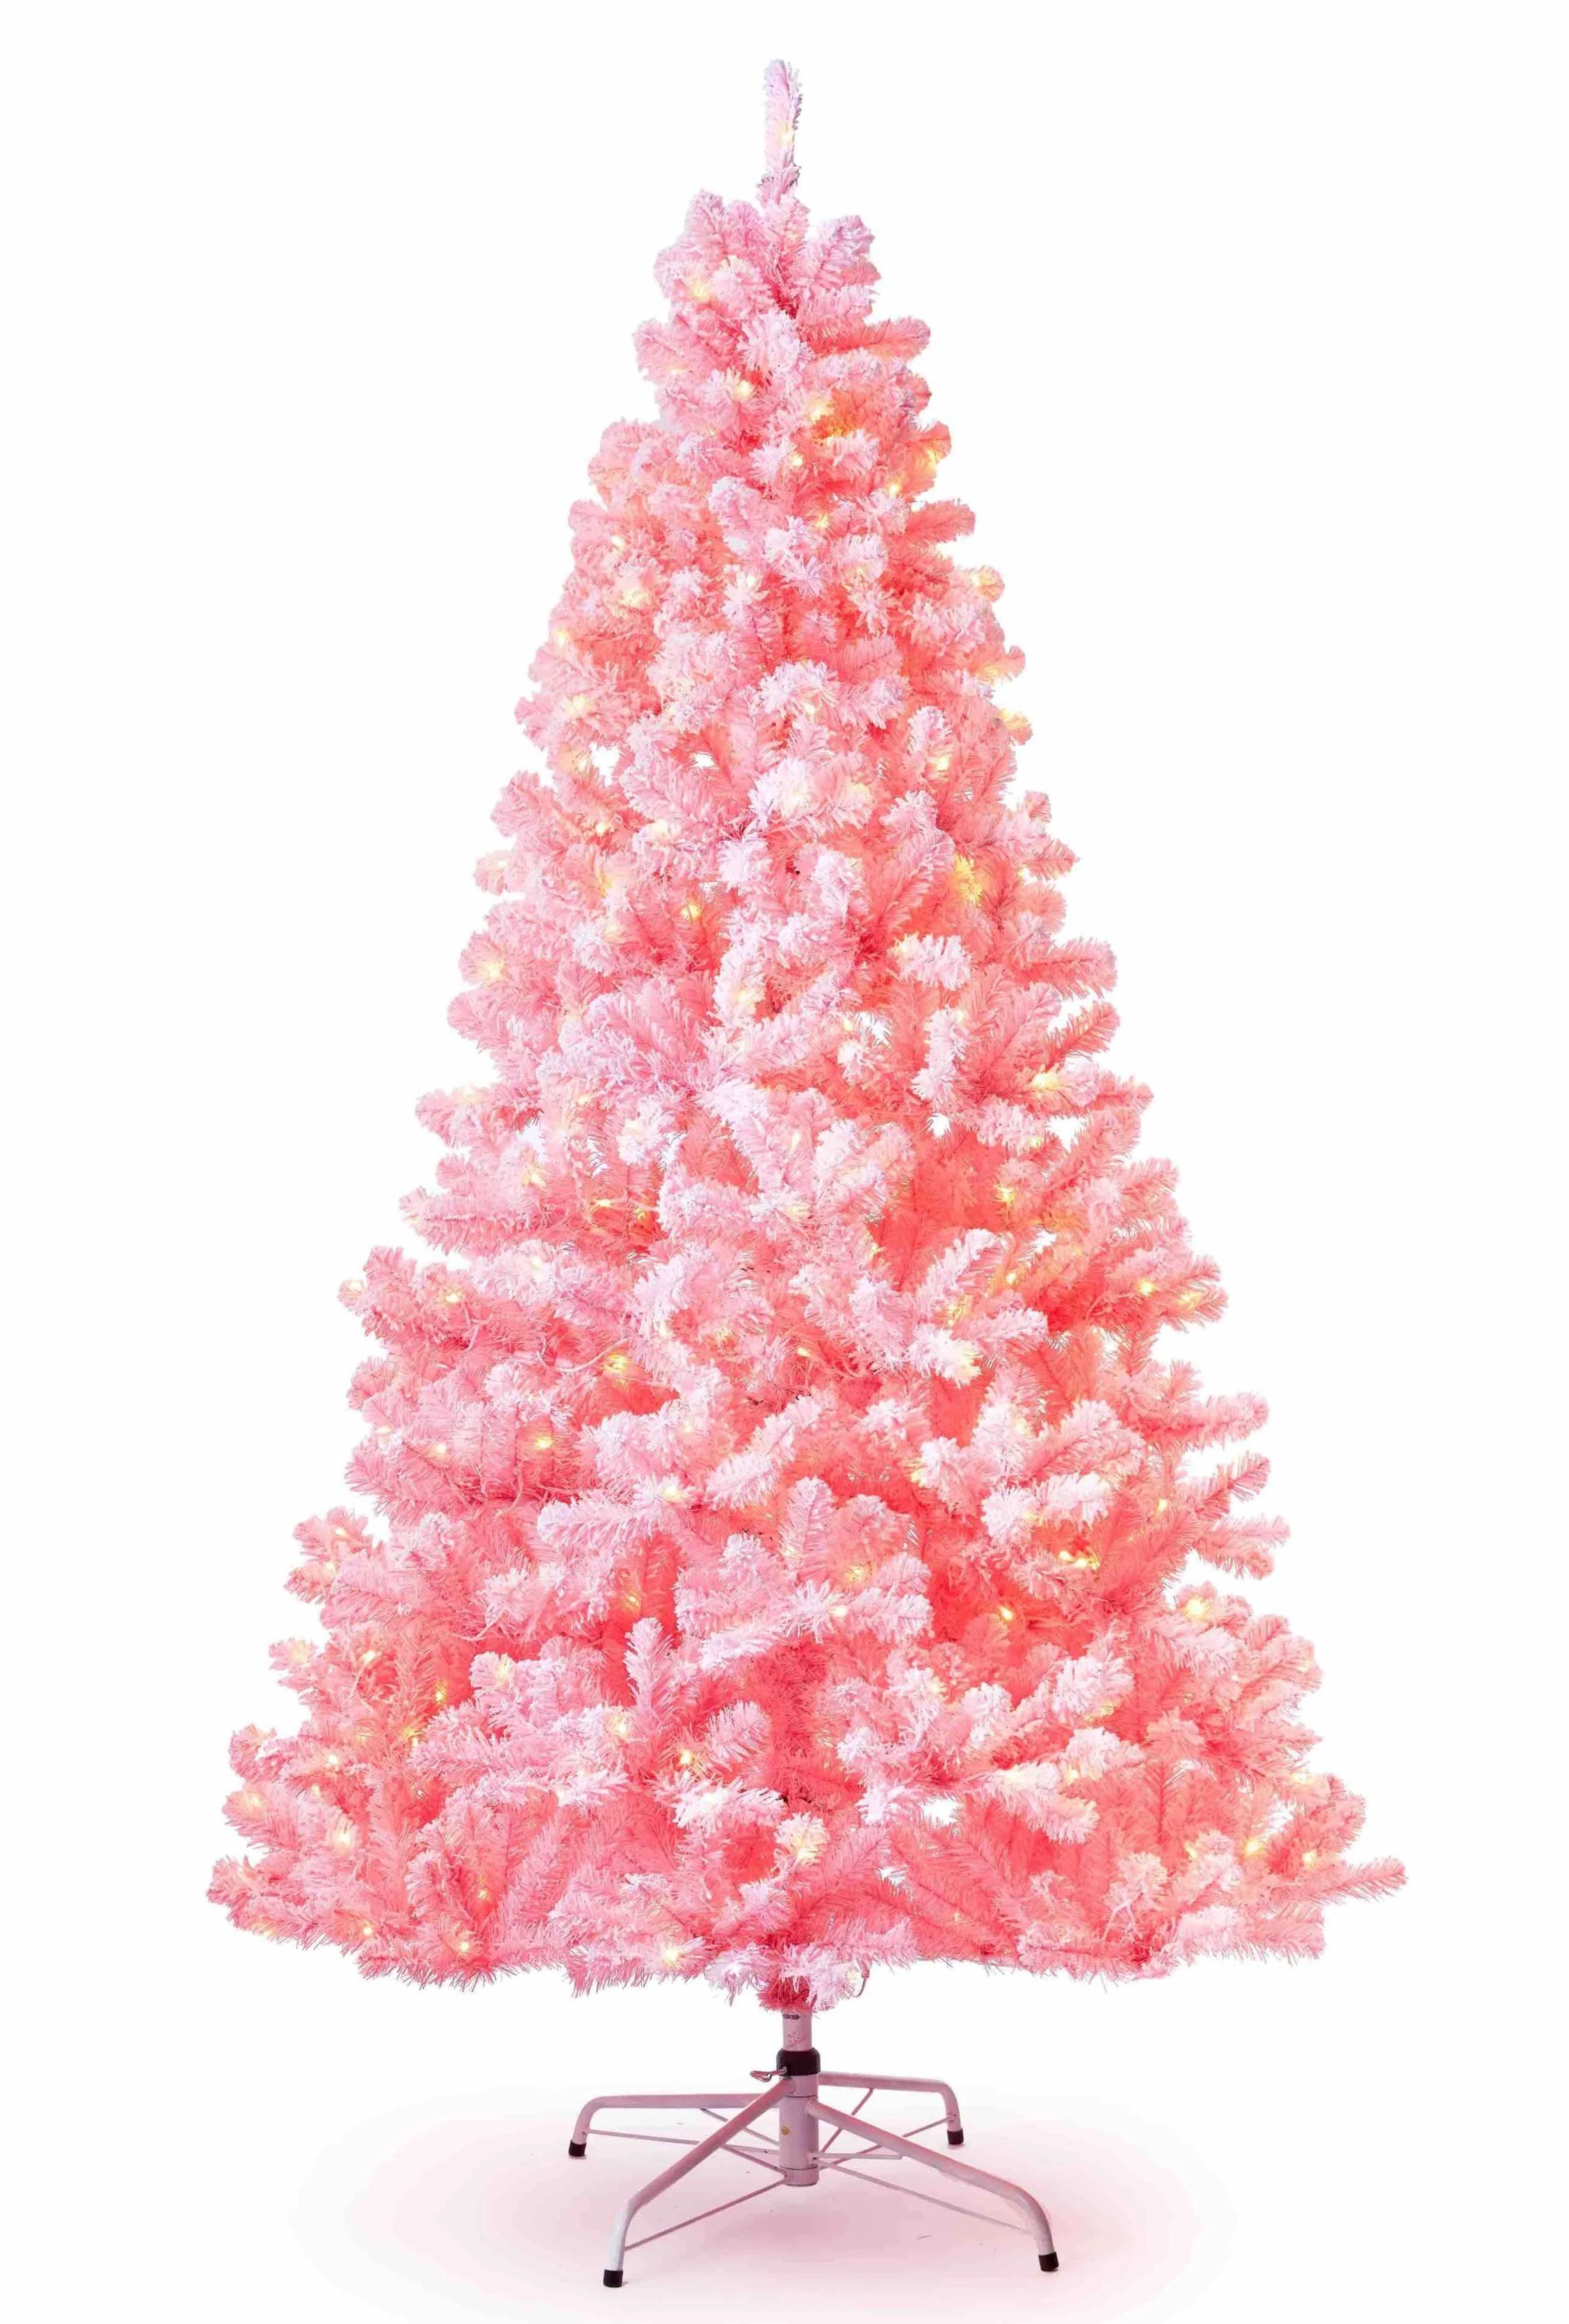 7 5 Duchess Pink Flock Artificial Christmas Tree With 600 Warm White Led Lights In 2020 Flocked Artificial Christmas Trees Tinsel Christmas Tree Pink Xmas